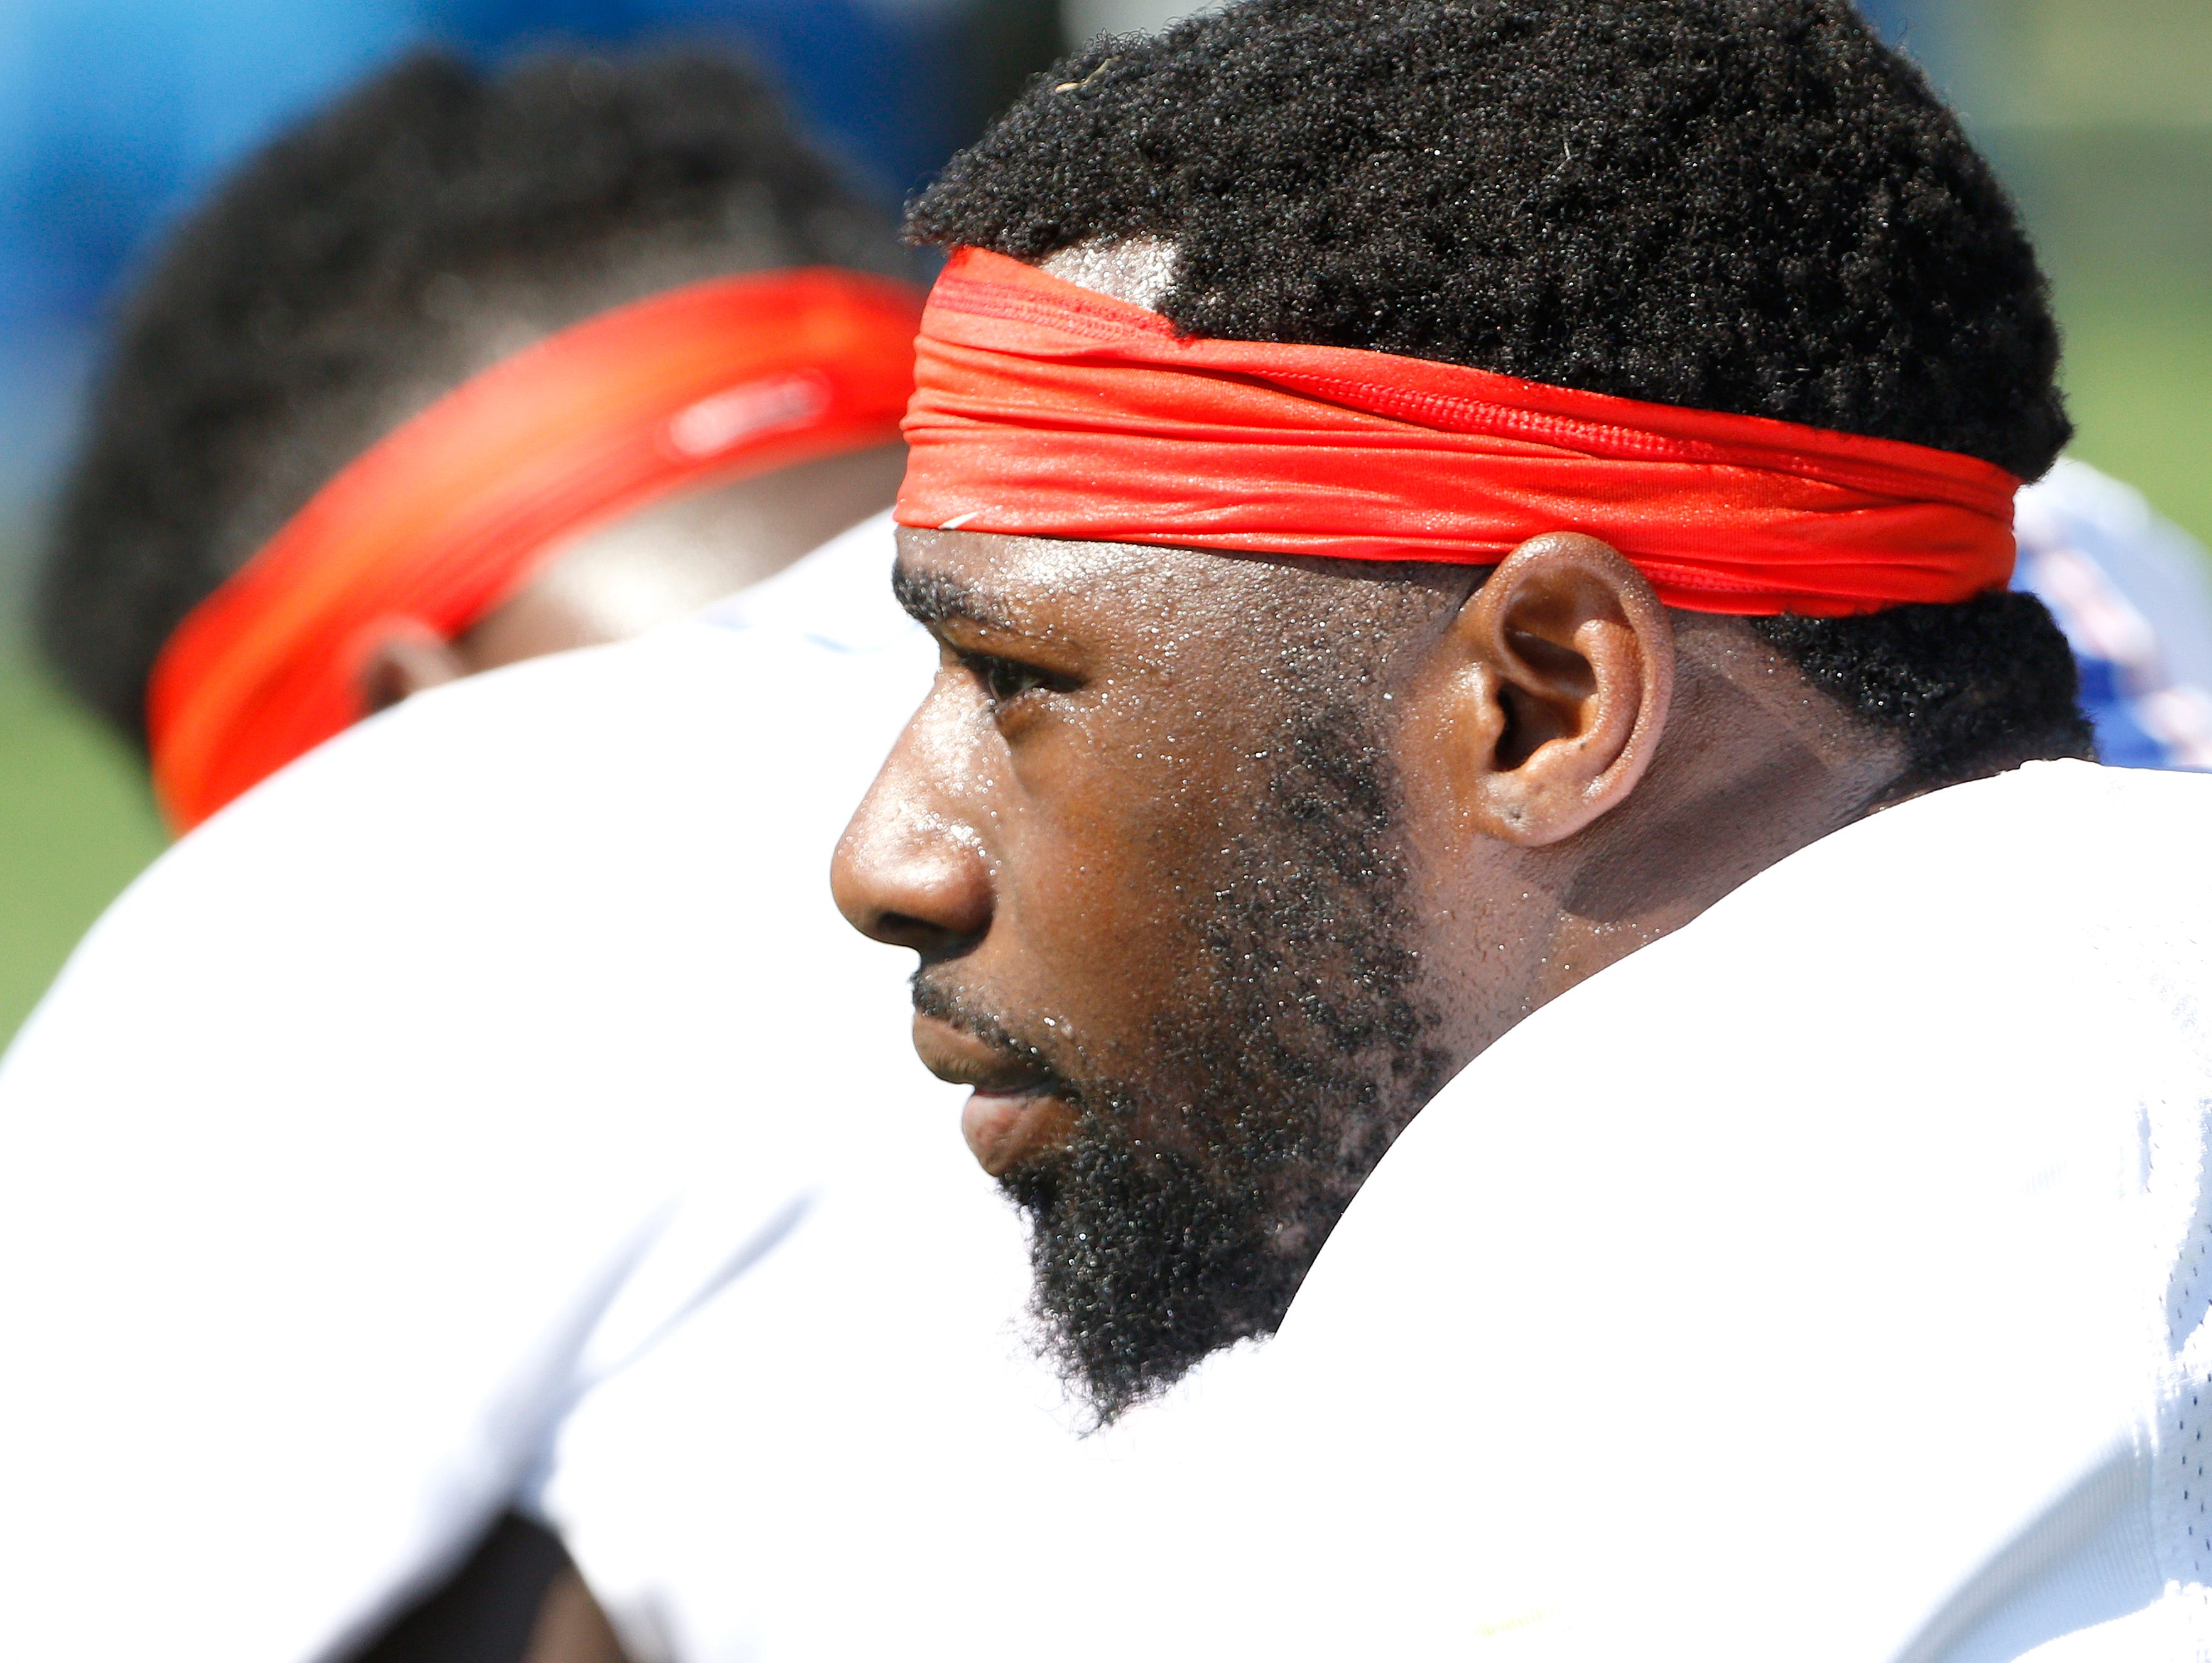 Marcus Maye takes a break during a University of Florida football practice session this spring. Maye will be one of the leaders on the defensive side of the ball this fall.